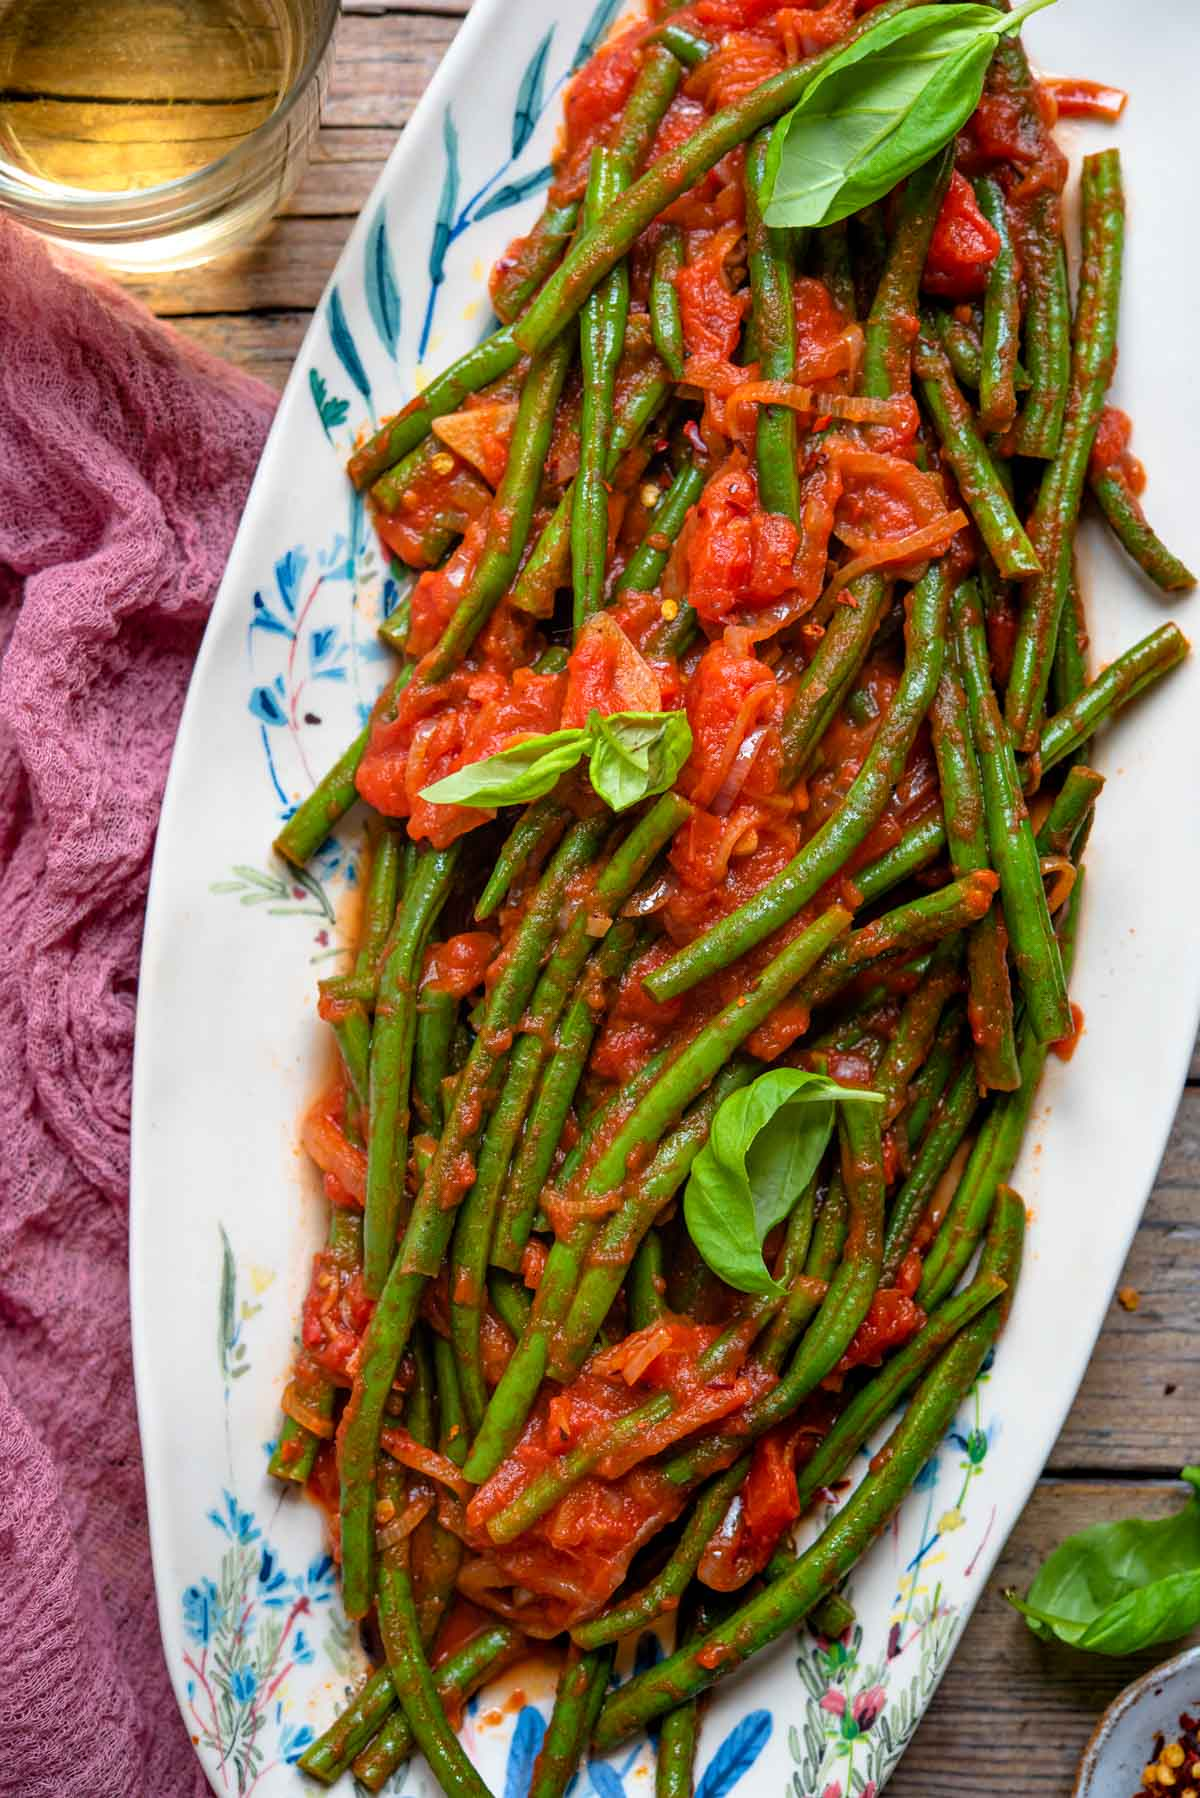 A close up of Italian green beans in tomato sauce on a oval plate